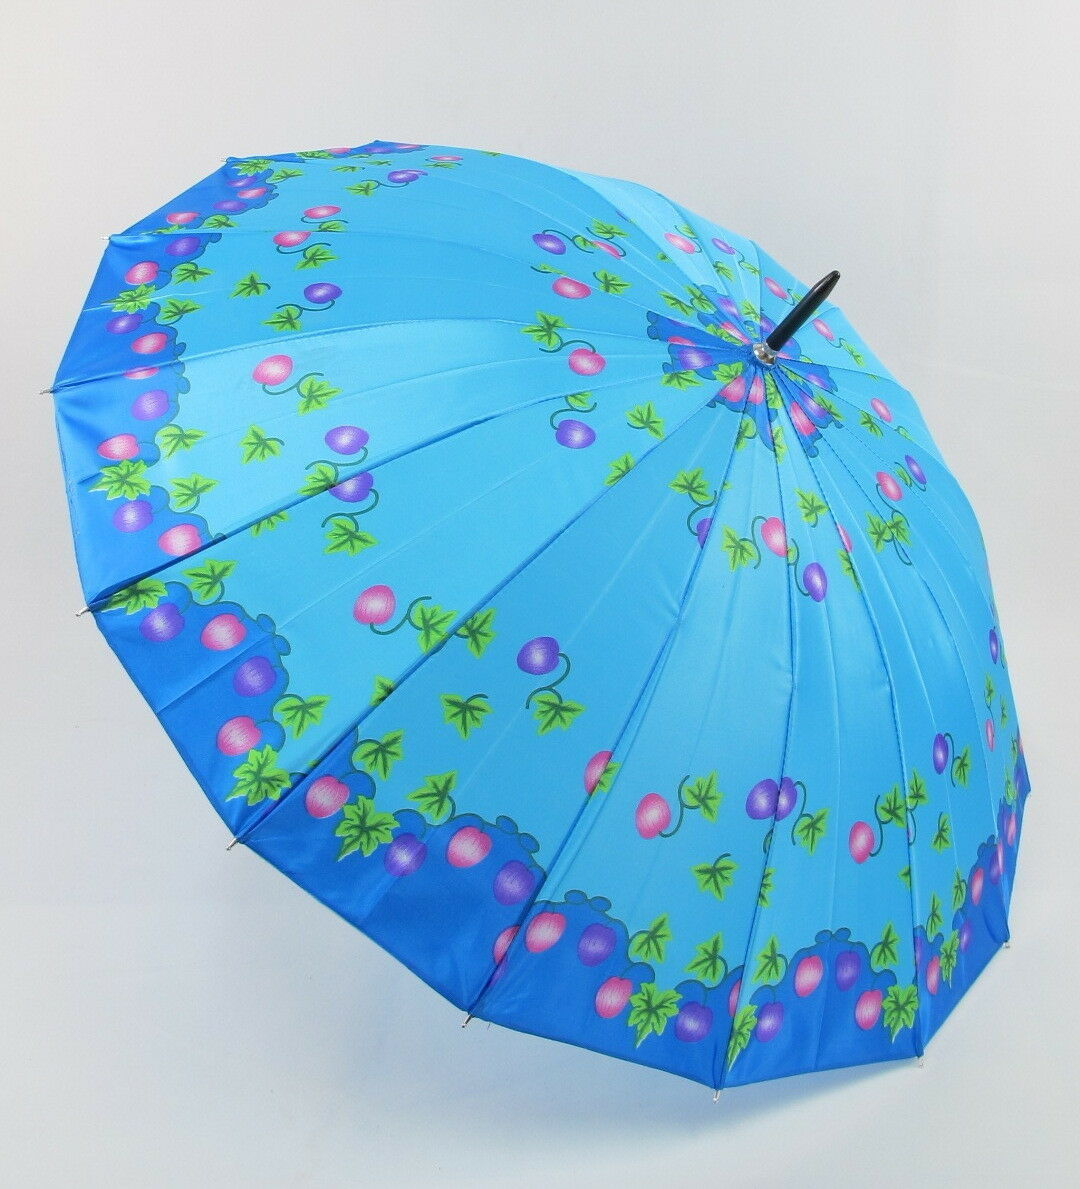 Blue Umbrella with Gold Curved Handle